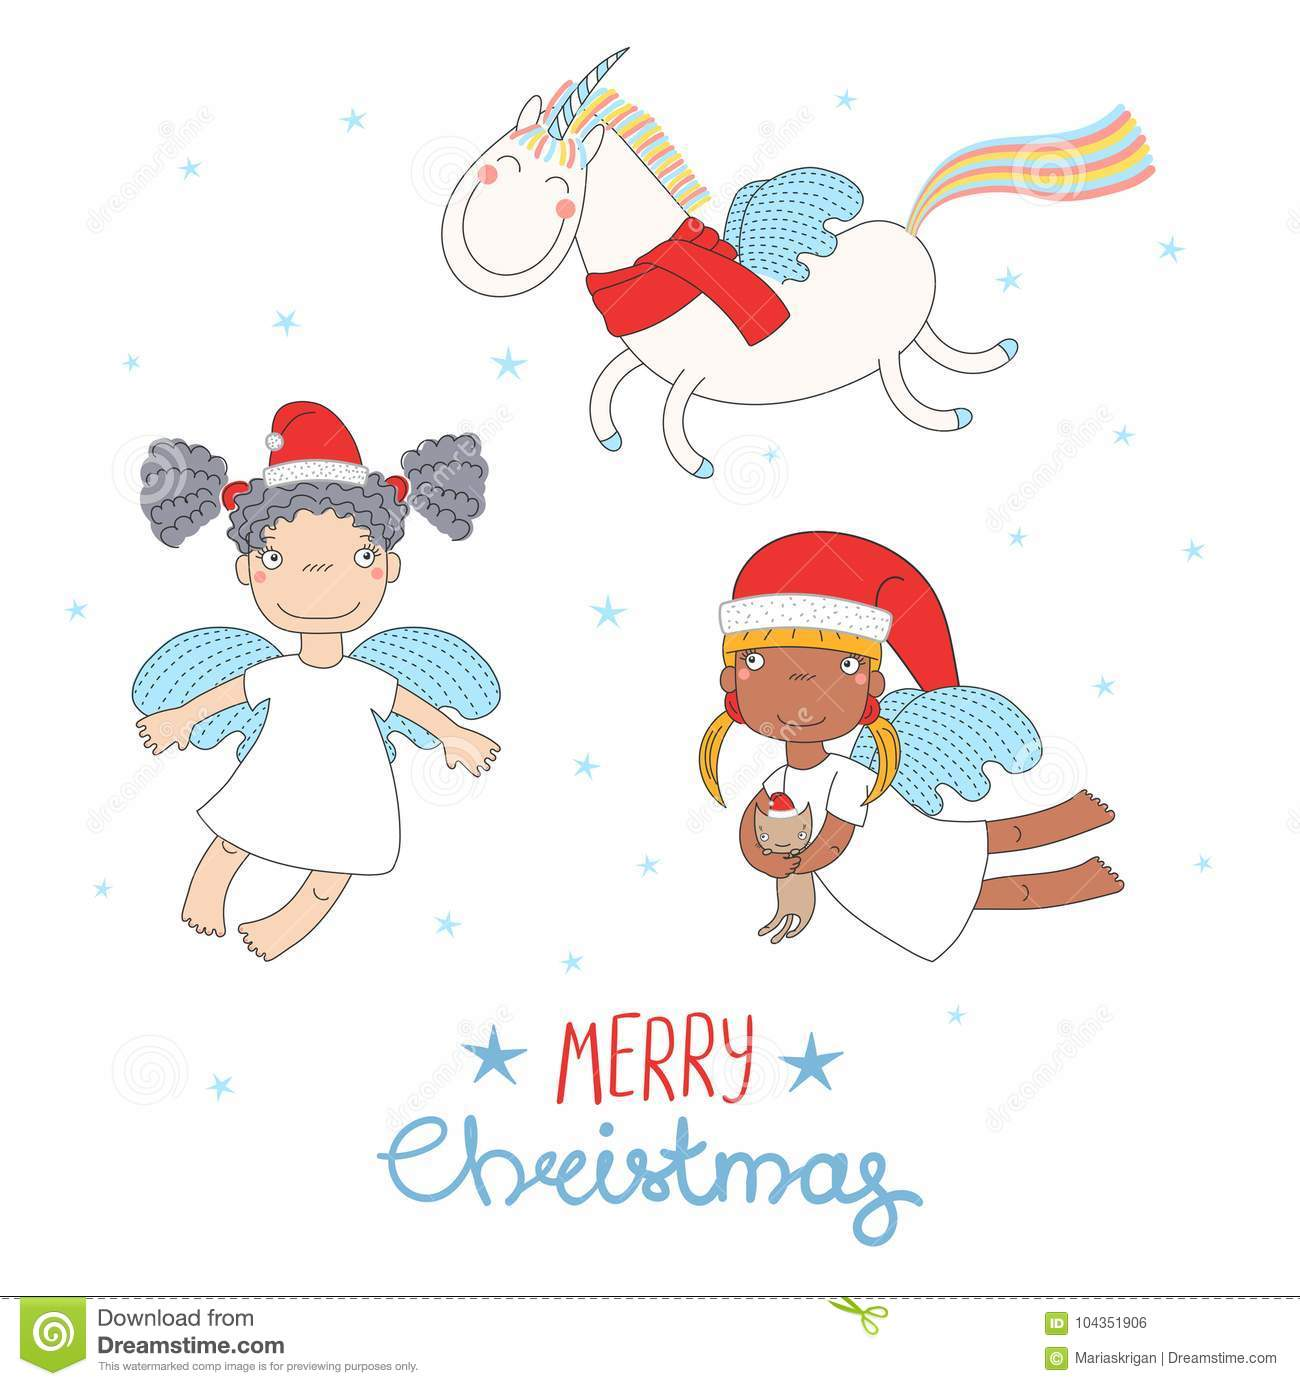 Cute Christmas angels stock vector. Illustration of drawn - 104351906